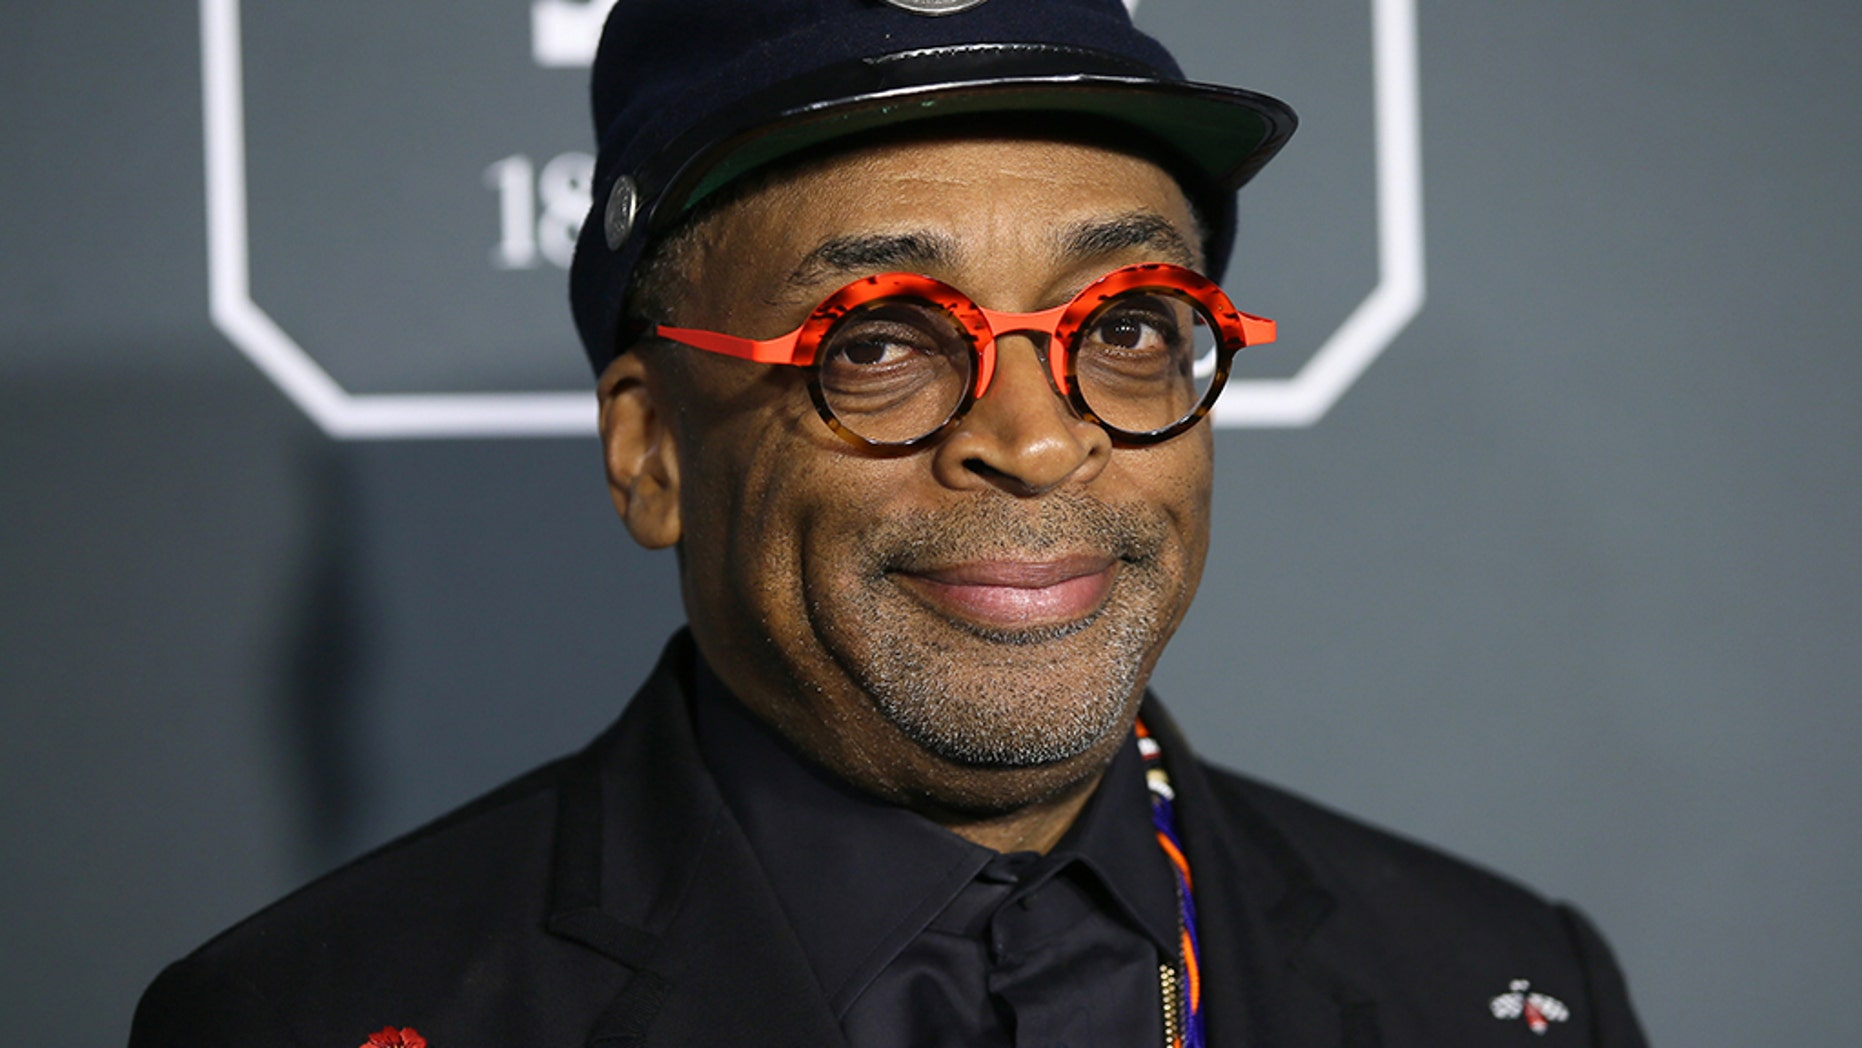 """""""BlacKkKlansman"""" director Spike Lee made reference to explorer Christopher Columbus during an interview Wednesday morning by describing him as a """"terrorist"""" and saying that he thinks the United States needs to be truthful about the country's past."""